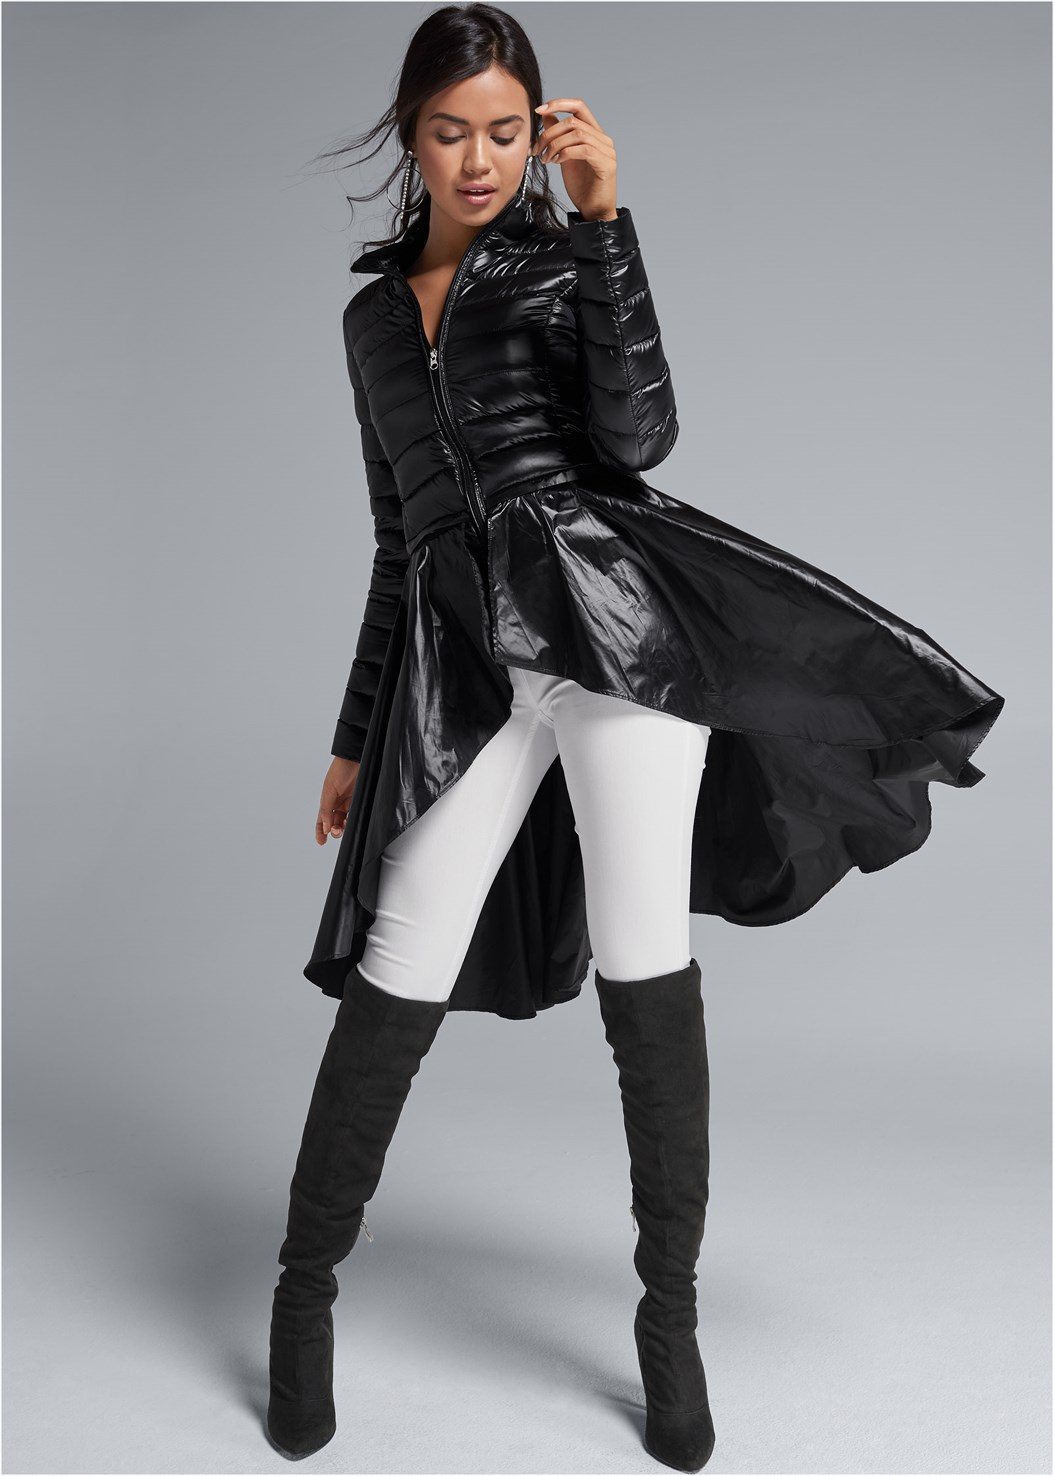 Ruffle Hem Puffer Jacket,Mid Rise Slimming Stretch Jeggings,Stud Detail Scarf